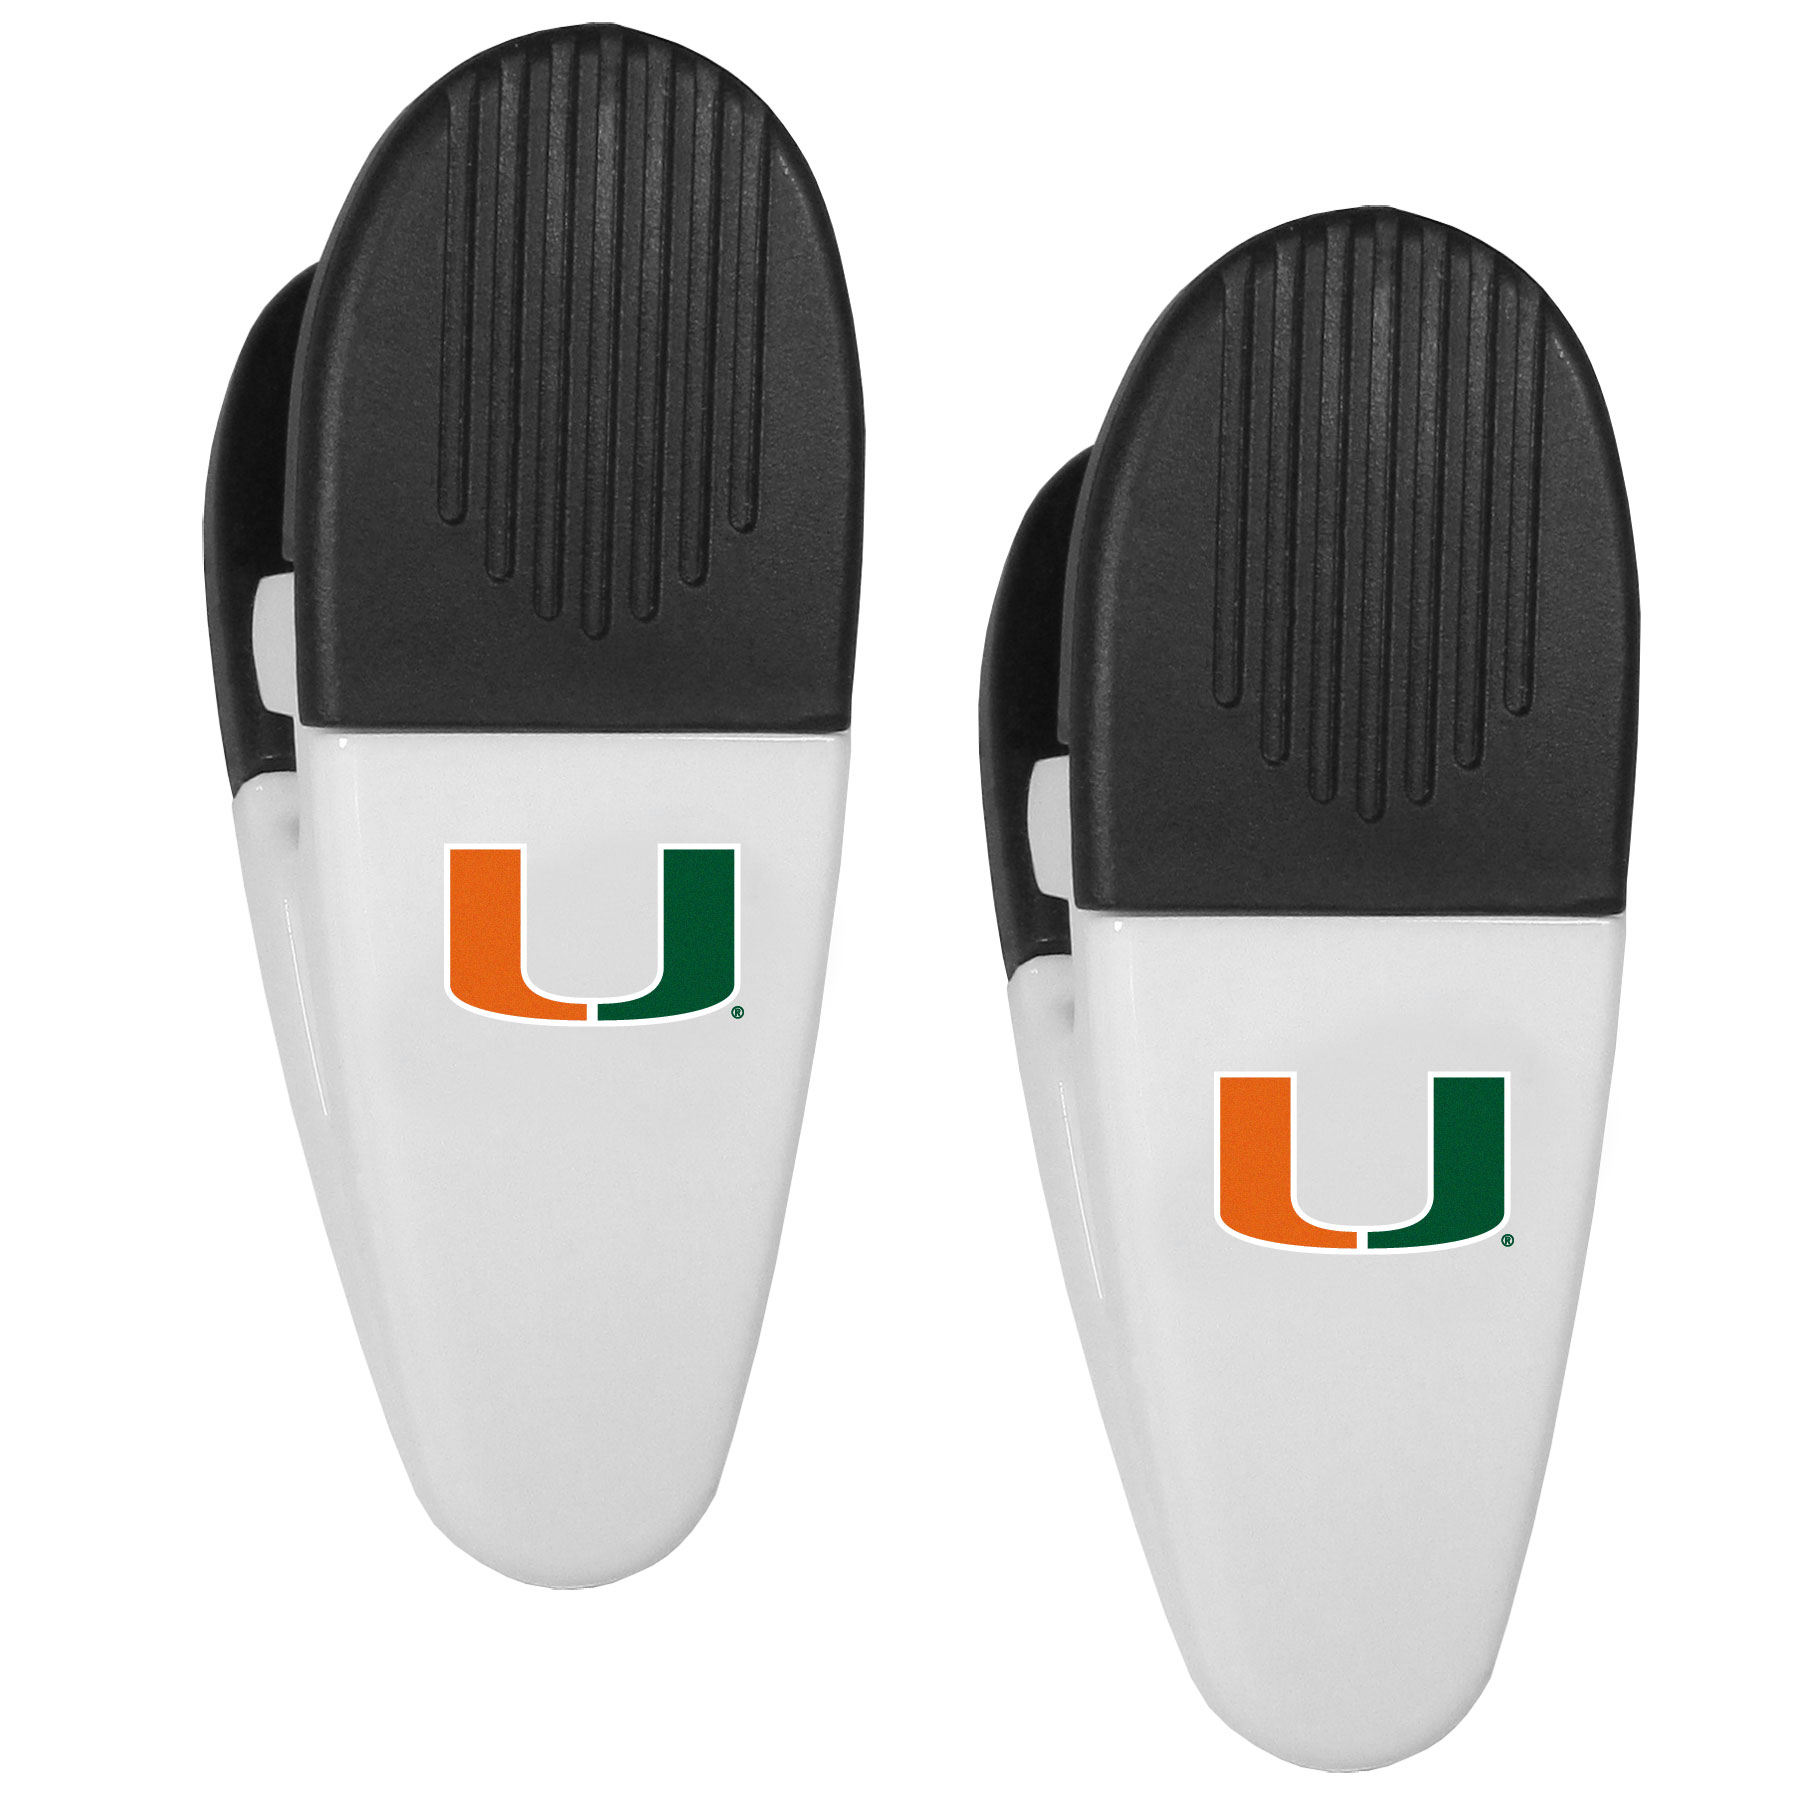 Miami Hurricanes Mini Chip Clip Magnets, 2 pk - Our Miami Hurricanes chip clip magnets feature a crisp team logo on the front of the clip. The clip is perfect for sealing chips for freshness and with the powerful magnet on the back it can be used to attach notes to the fridge or hanging your child's artwork. Set of 2 magnet clips, each clip is 3.5 inches tall and 1.25 inch wide.